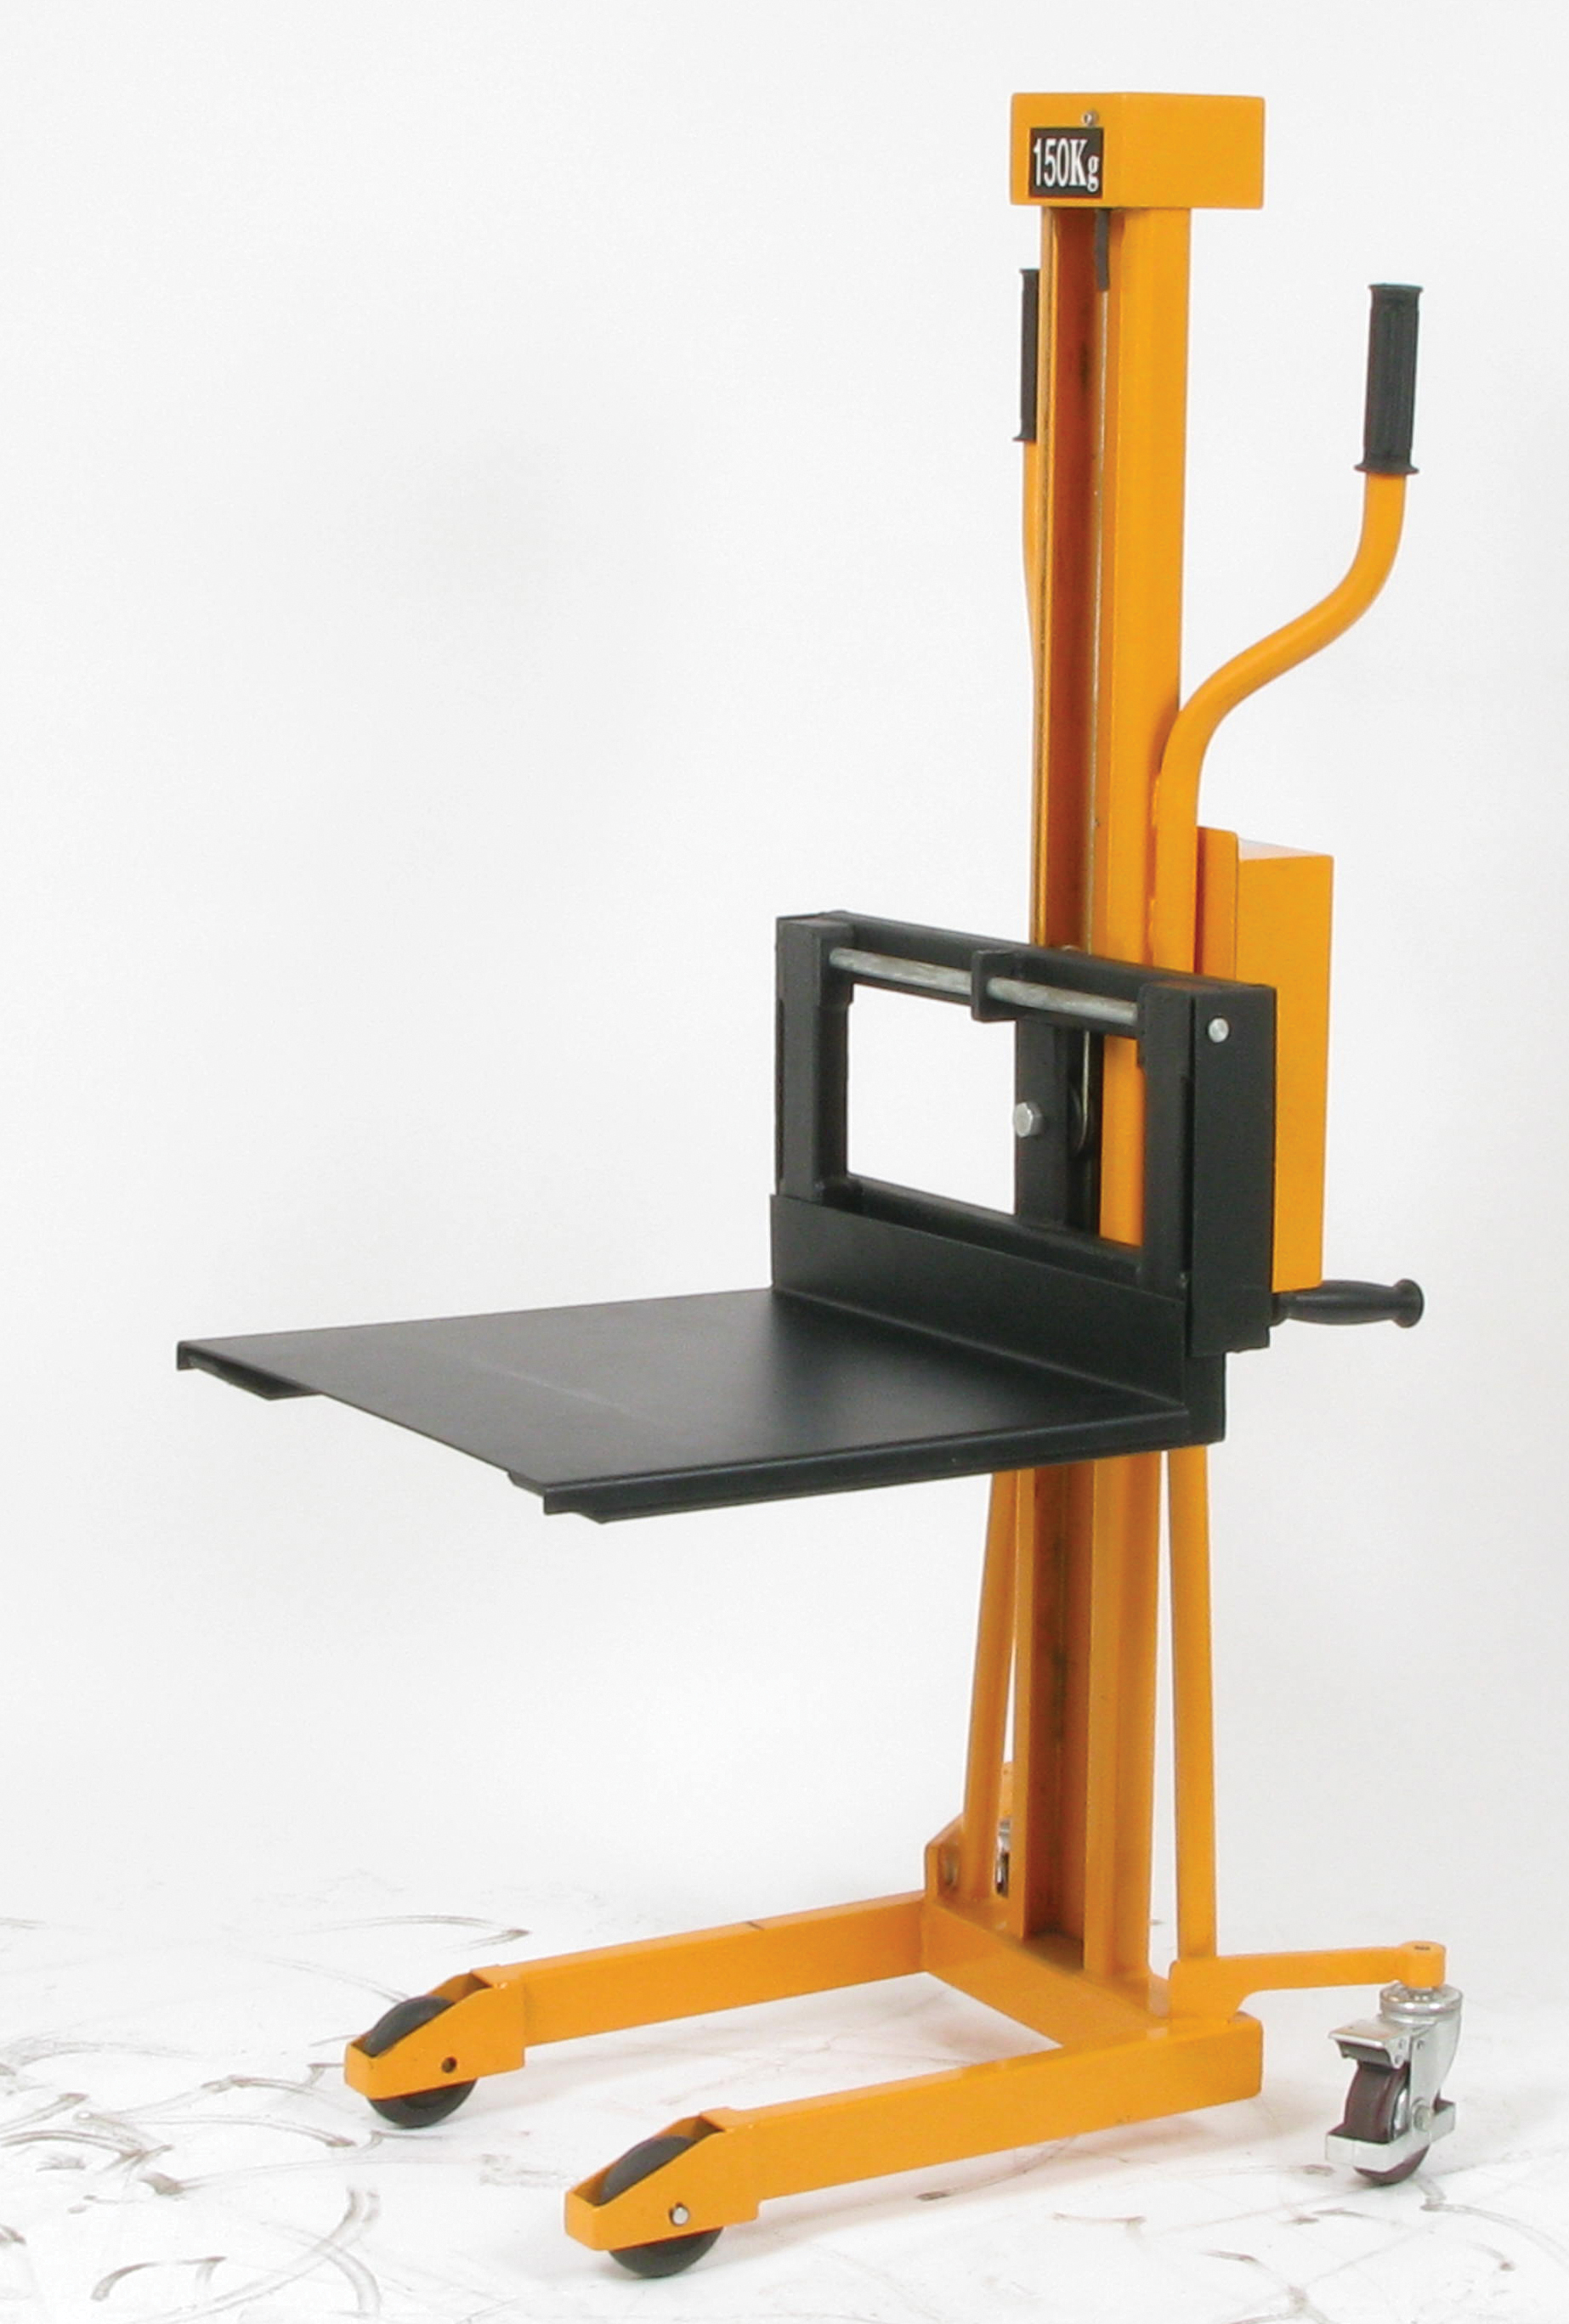 Manual Amp Electric Value Lifts Office Lifts Mini Winch